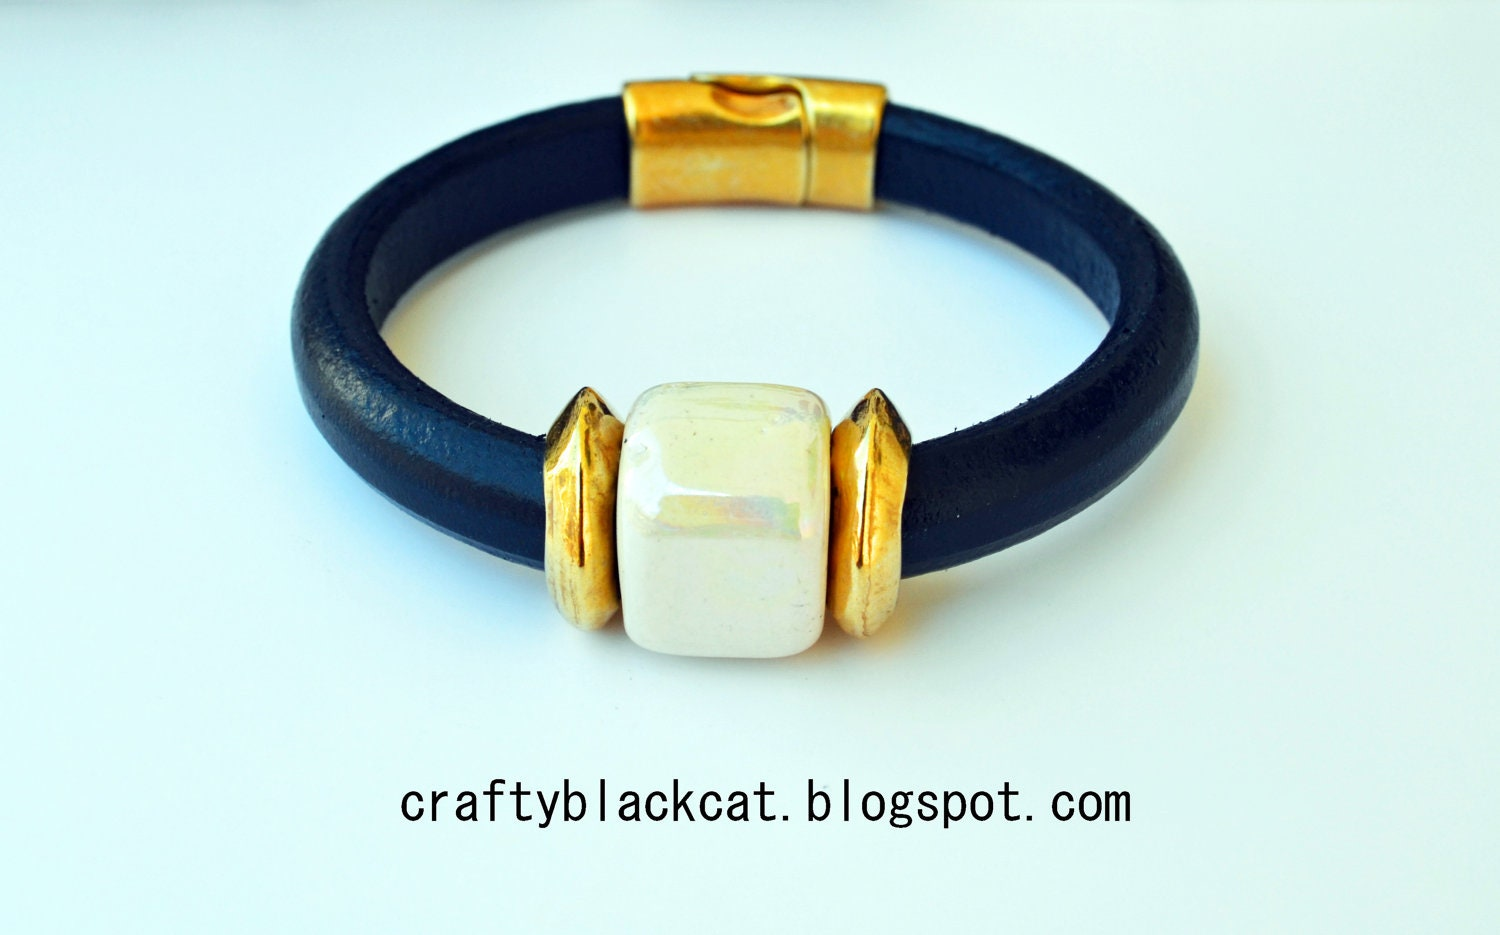 Regaliz leather bracelet in navy blue colour with white ceramic bead, metallic parts and magnetic clasp. - TheCraftyblackcat